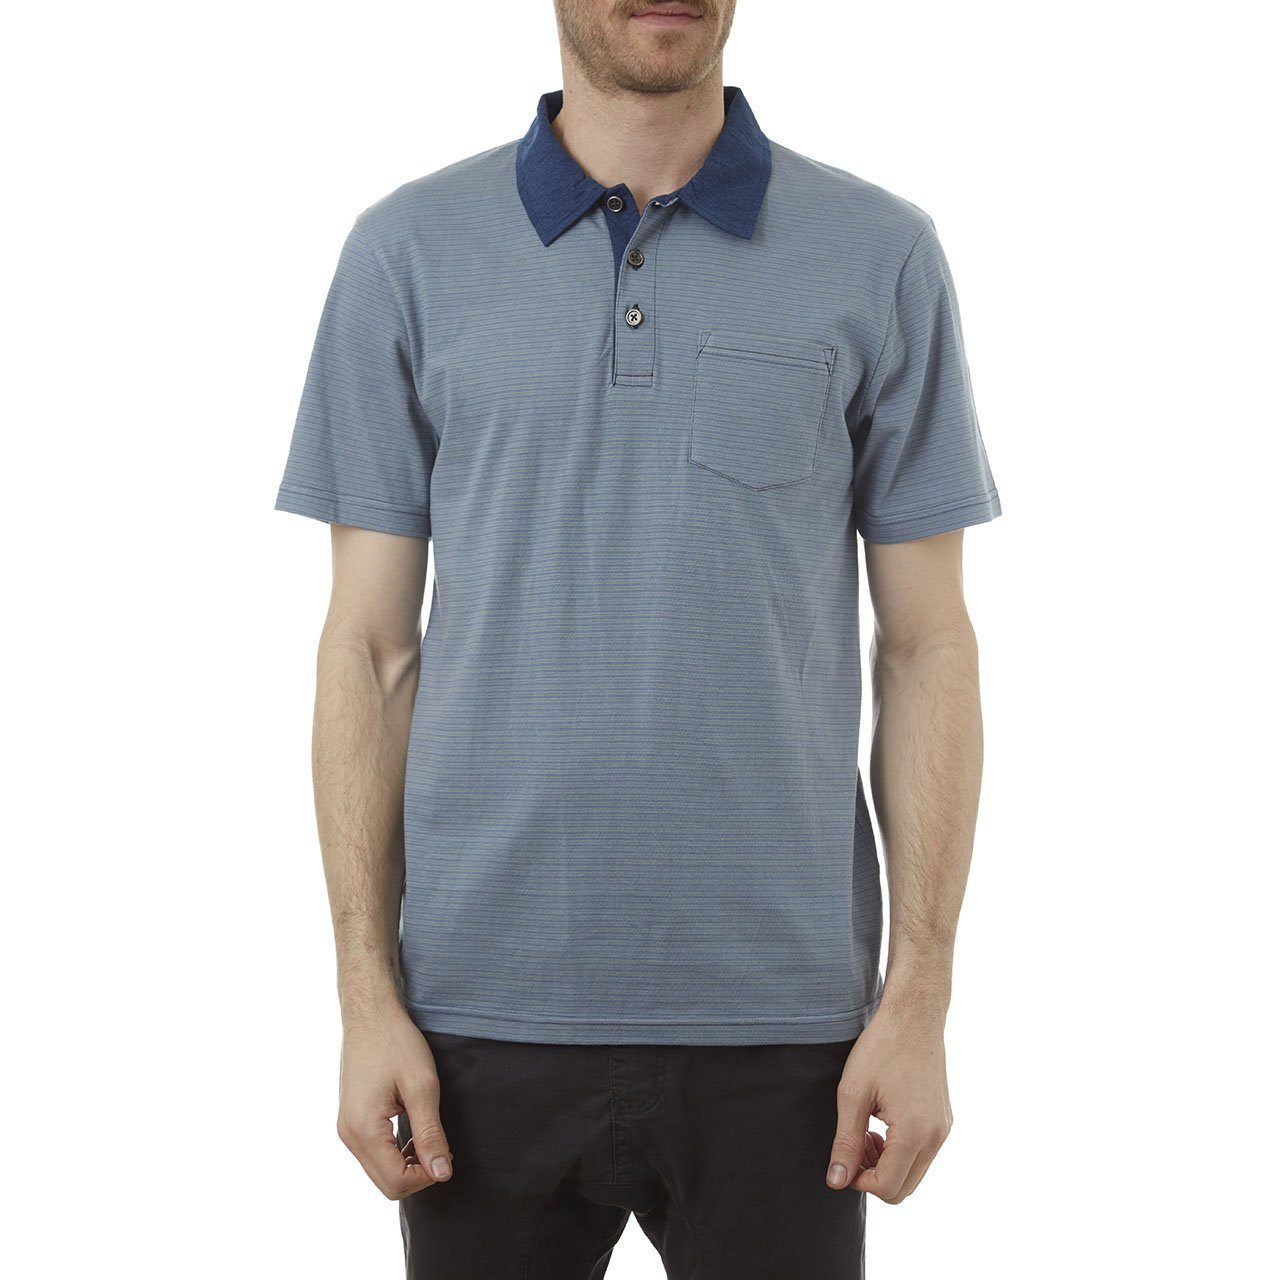 mens blue polo shirt top mens clothing store lord owens